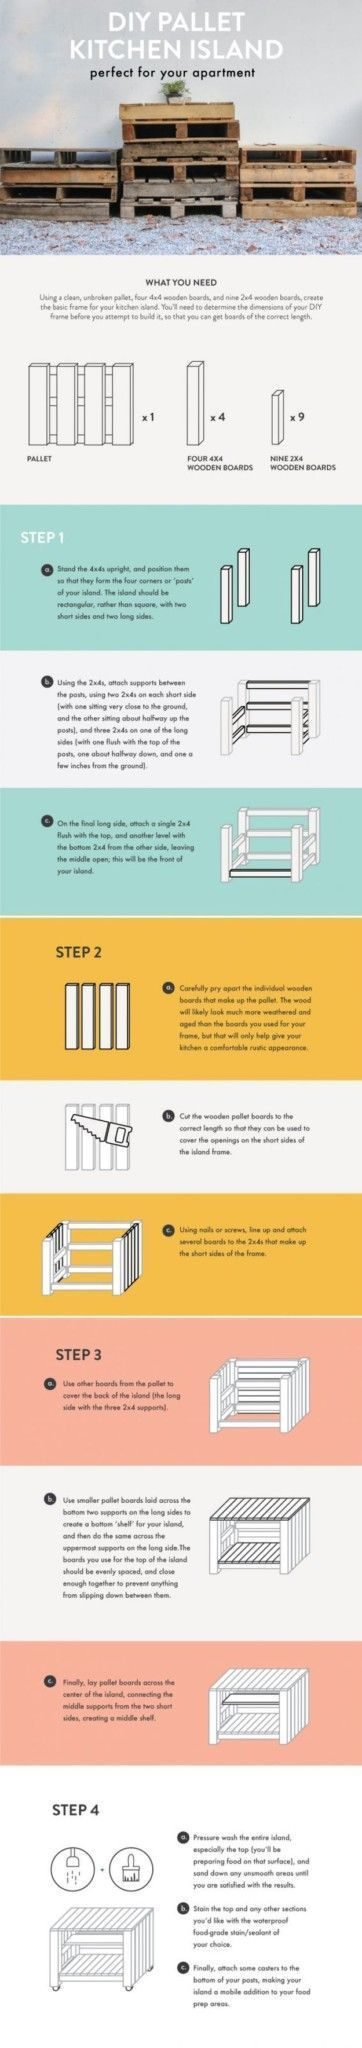 DIY Pallet Kitchen Island infographic | 3 Simple and Inexpensive DIY Furniture Projects